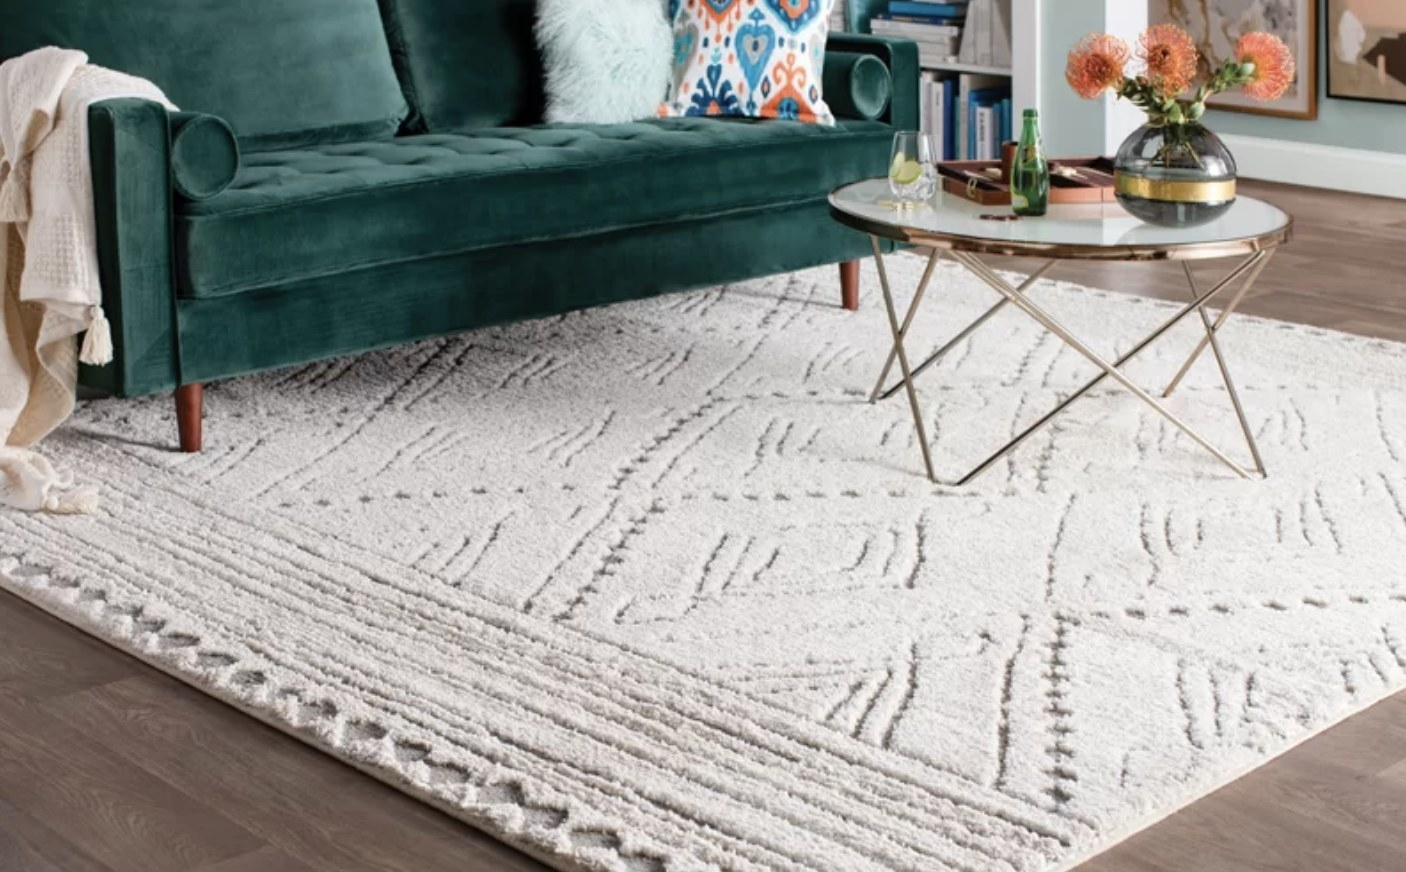 the rug in beige/light gray shown in a living room setting